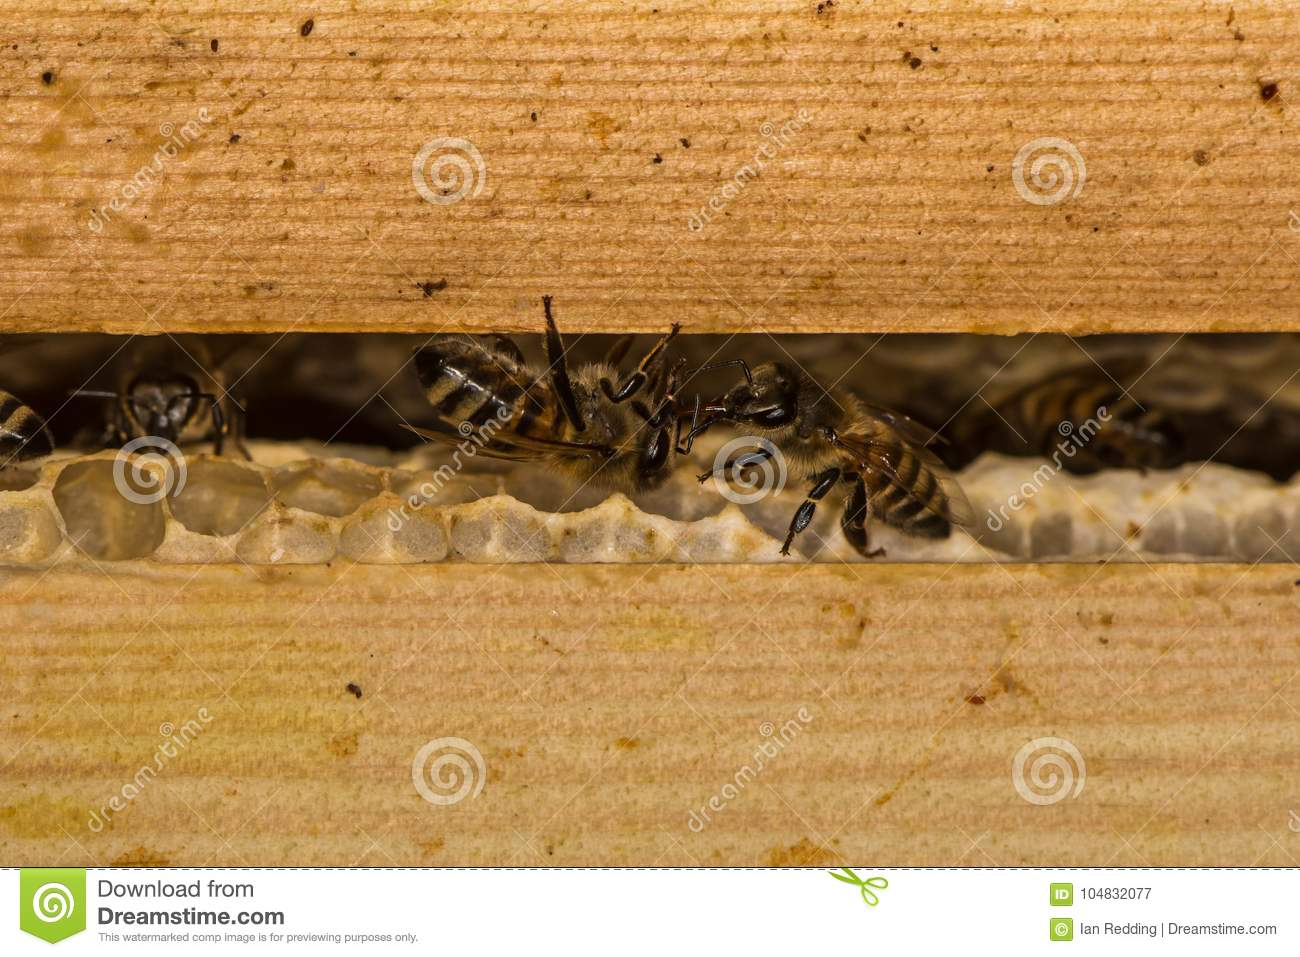 Honey bees & x28;Apis mellifera& x29; on honey comb in hive